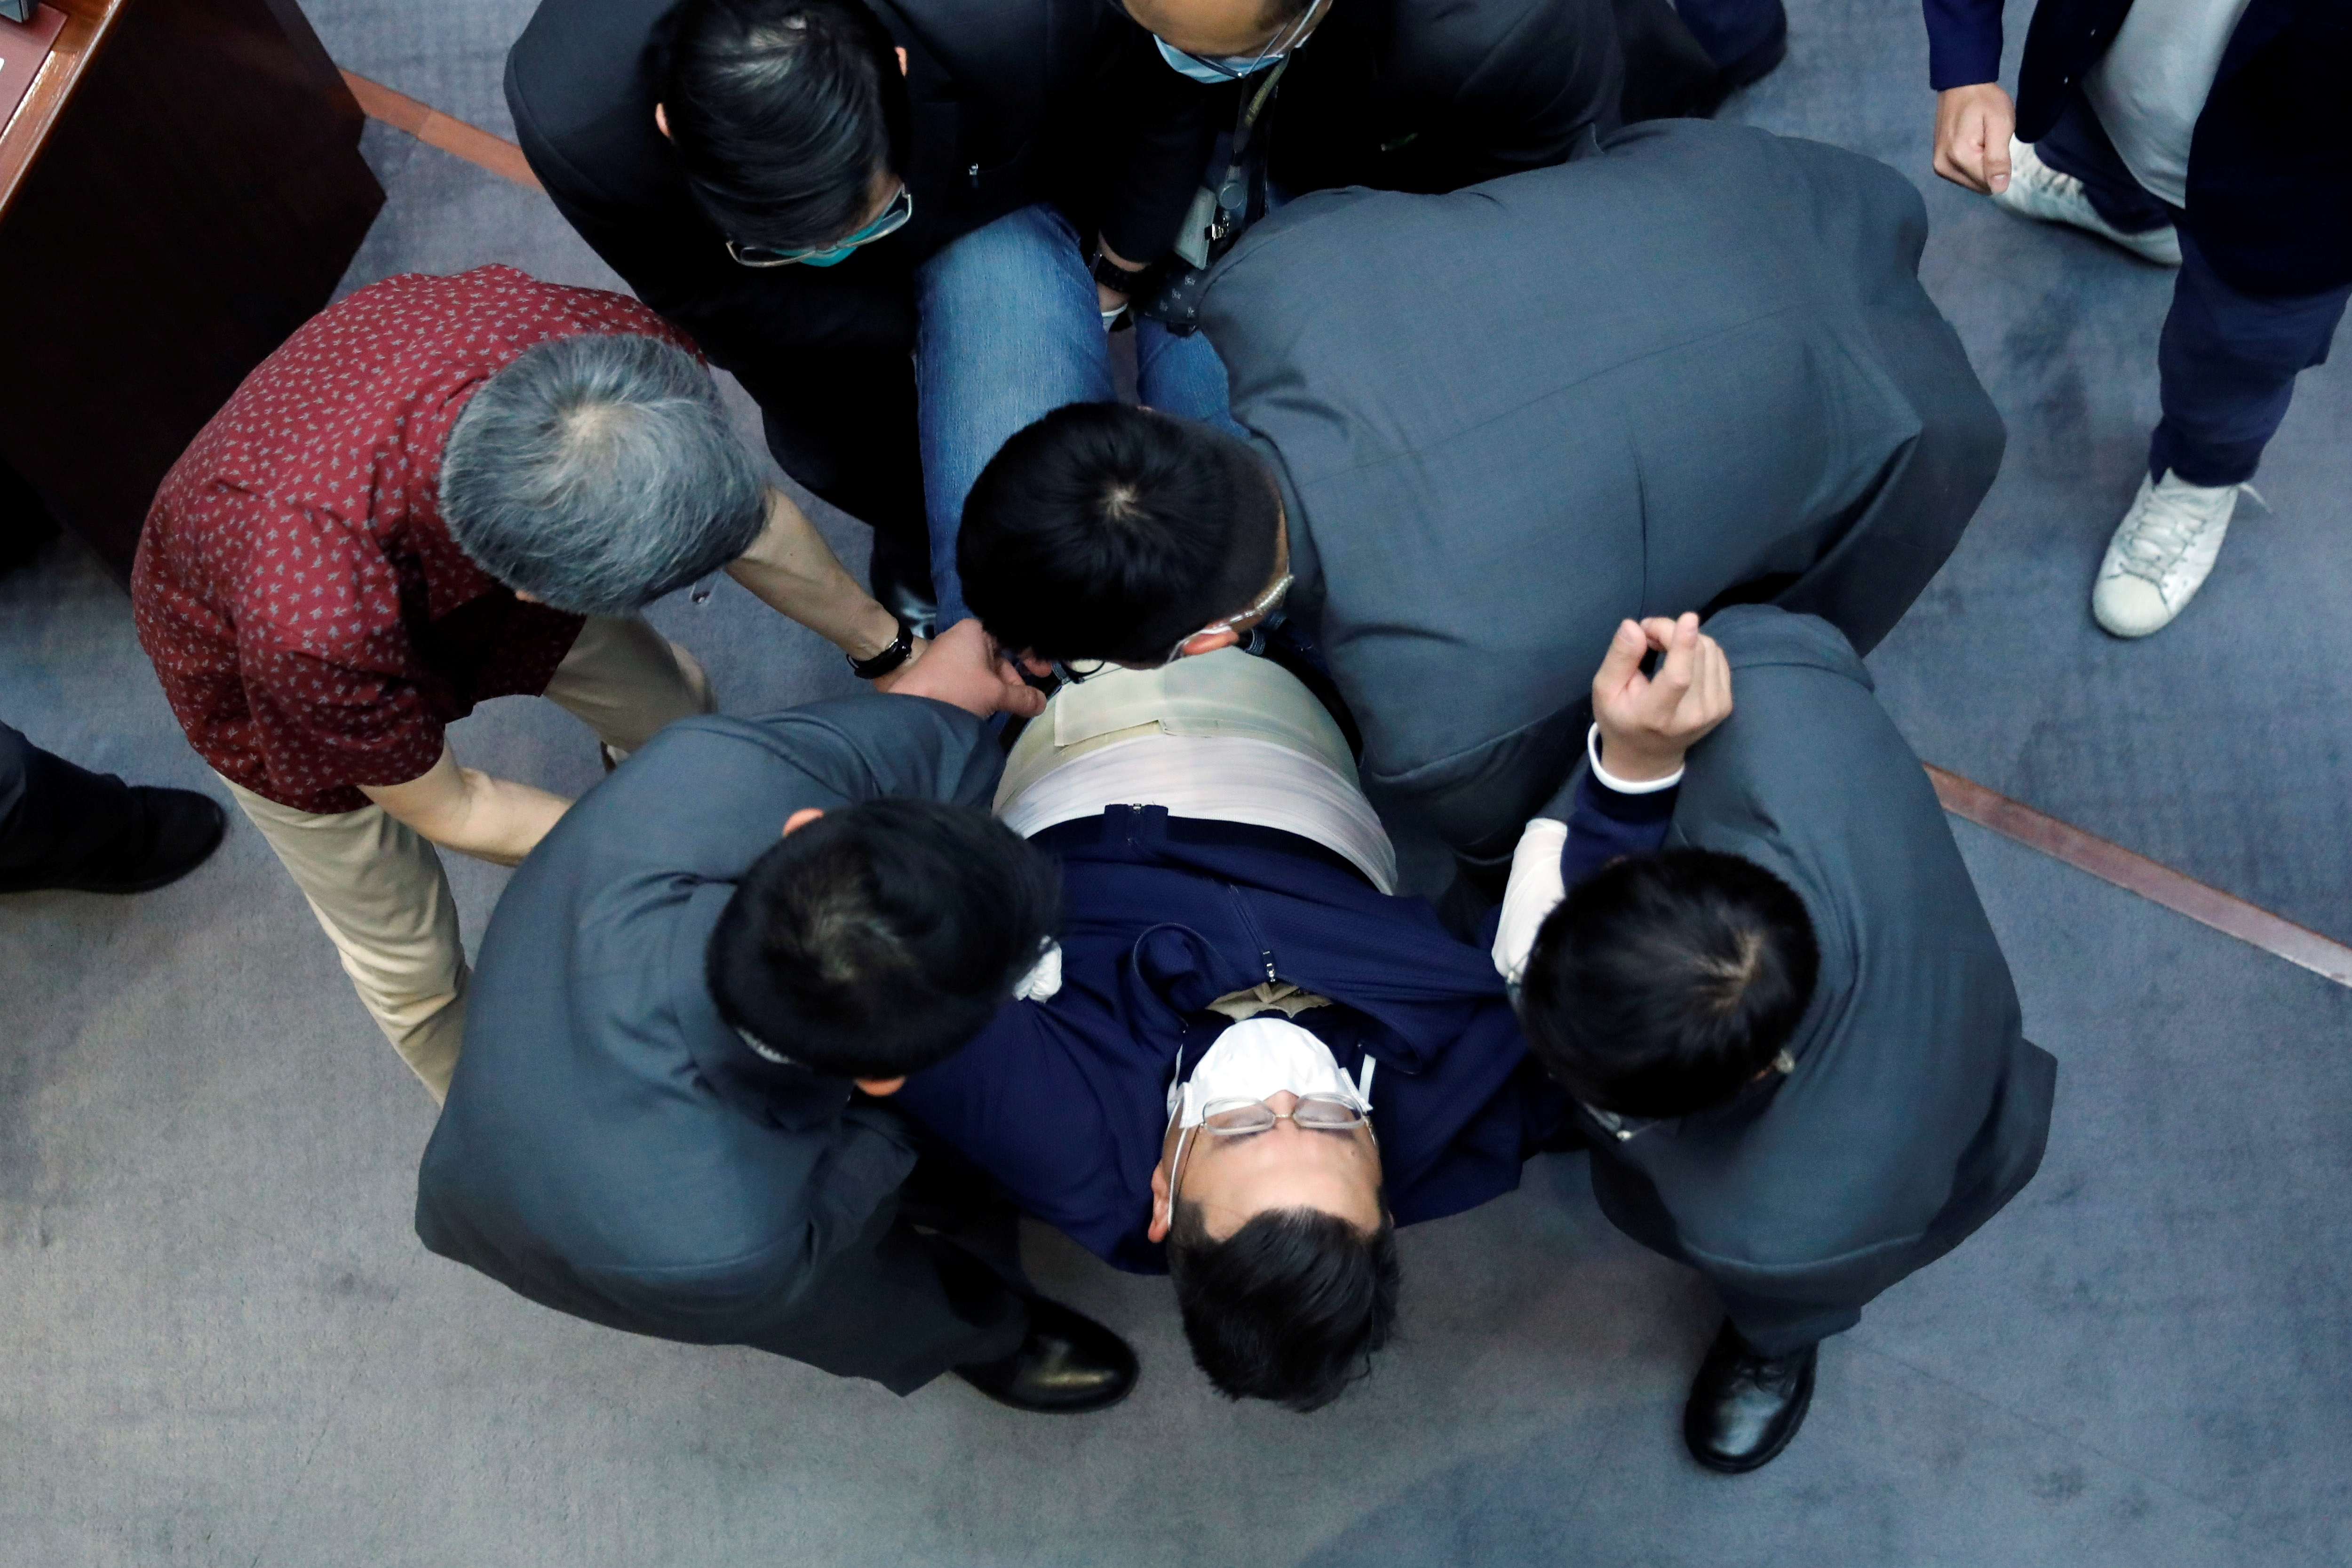 Pan-democratic legislator Andrew Wan is taken away by security as he protests against new security laws during the Legislative Council's House Committee meeting in Hong Kong, China May 22, 2020.  REUTERS/Stringer